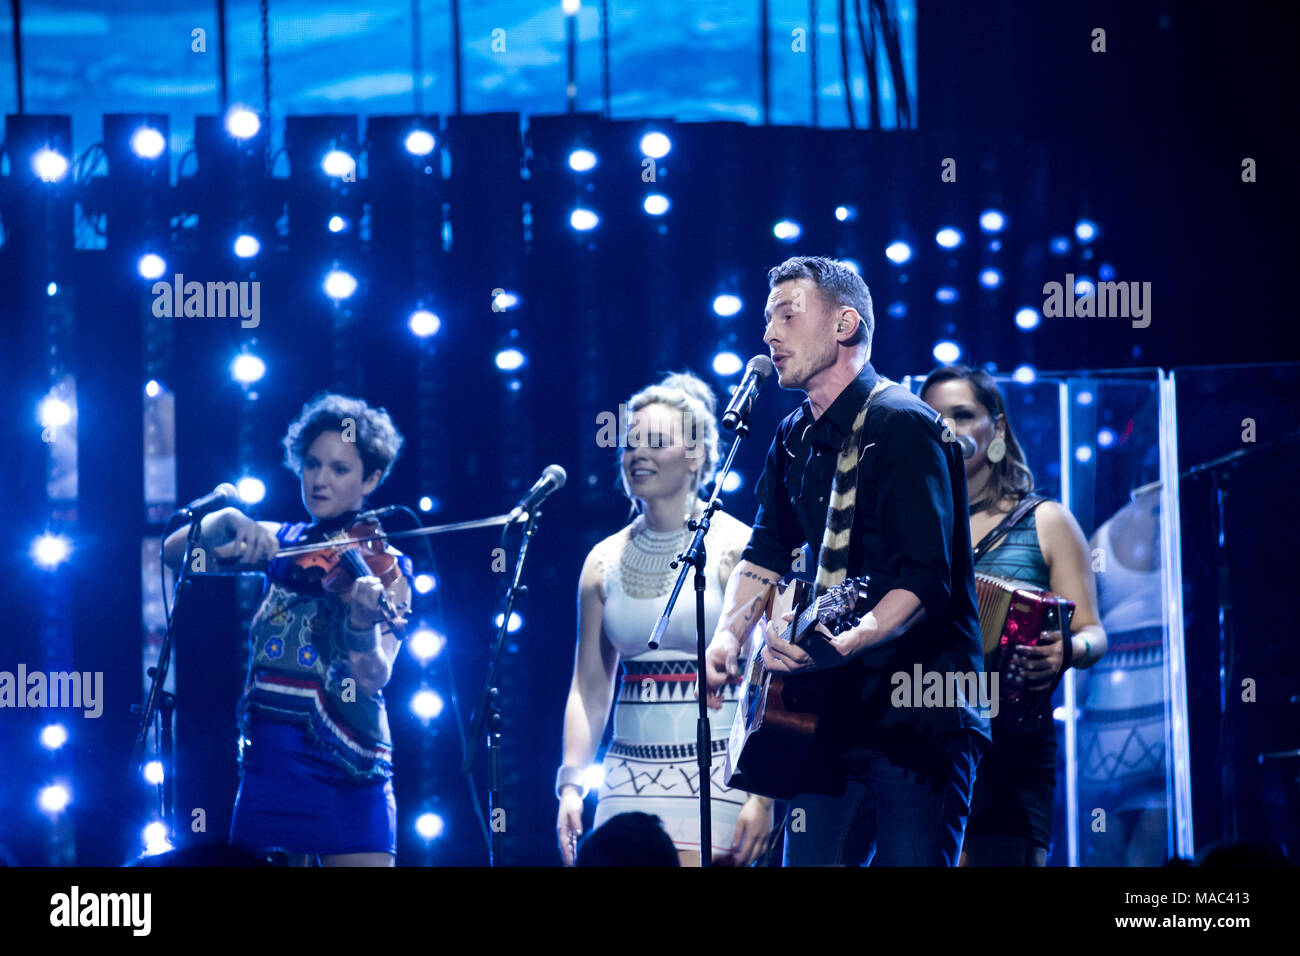 Vancouver, CANADA. 26th March, 2018. The Jerry Cans performing at the 2018 Juno Awards in Vancouver. Credit: Bobby Singh/fohphoto - Stock Image